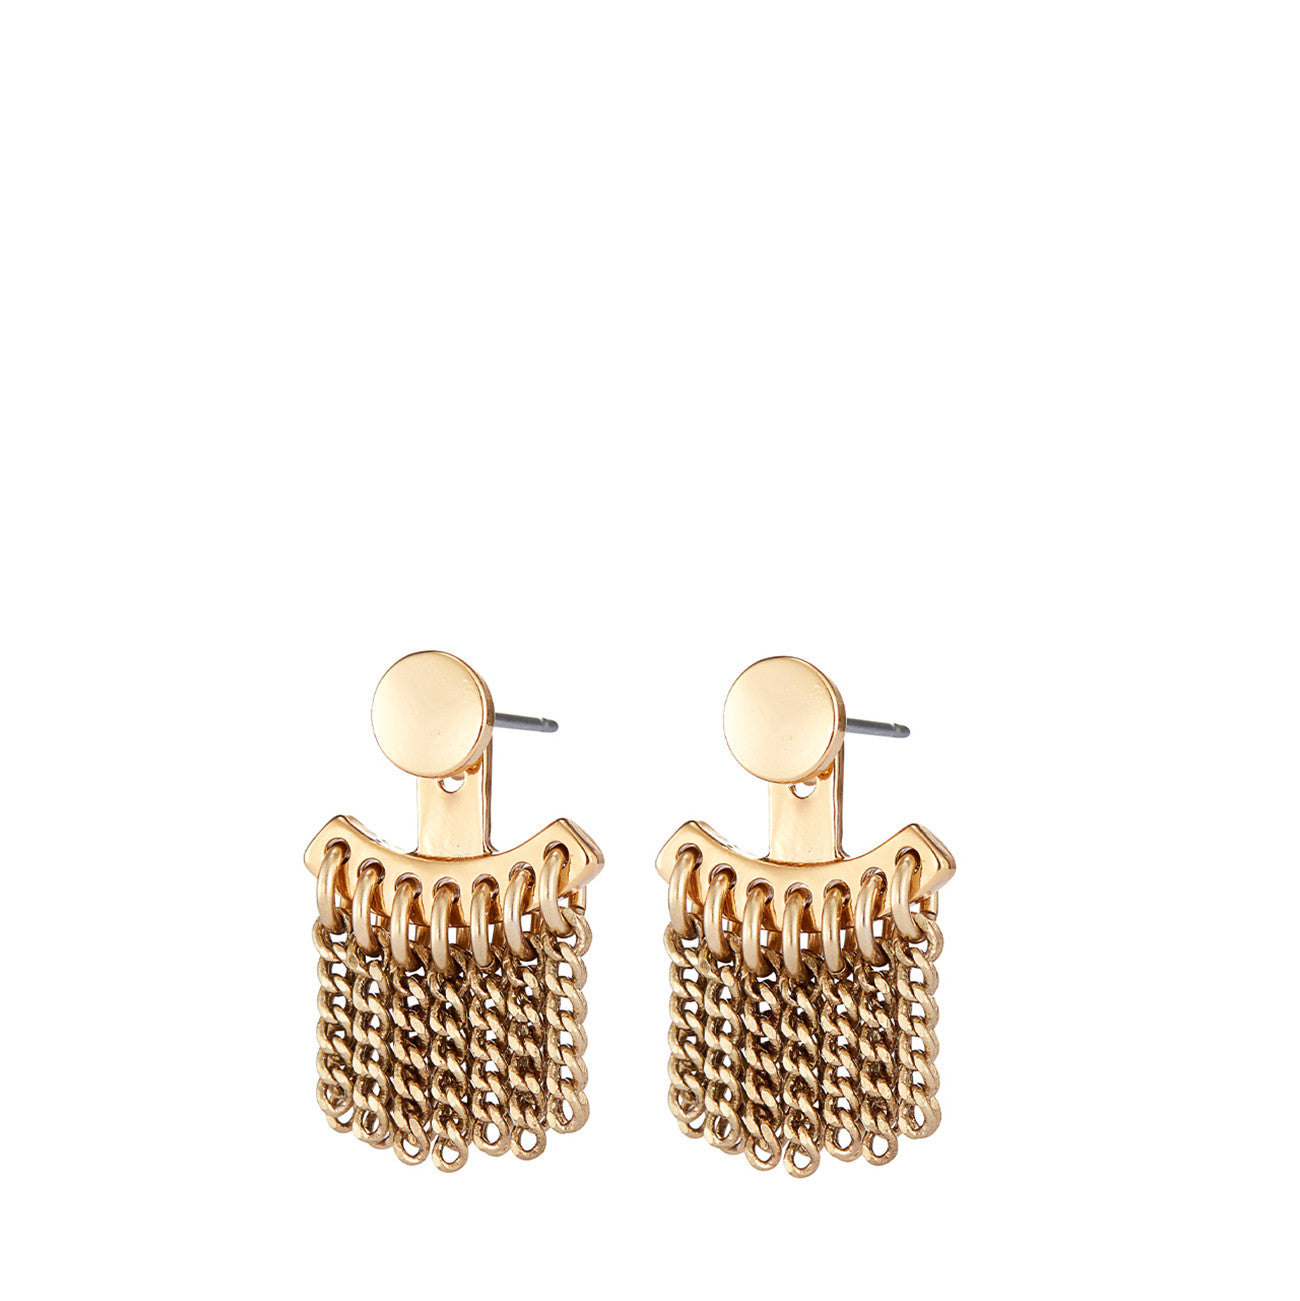 Collins Ave. Ear Jackets by Jenny Bird in High Polish Gold